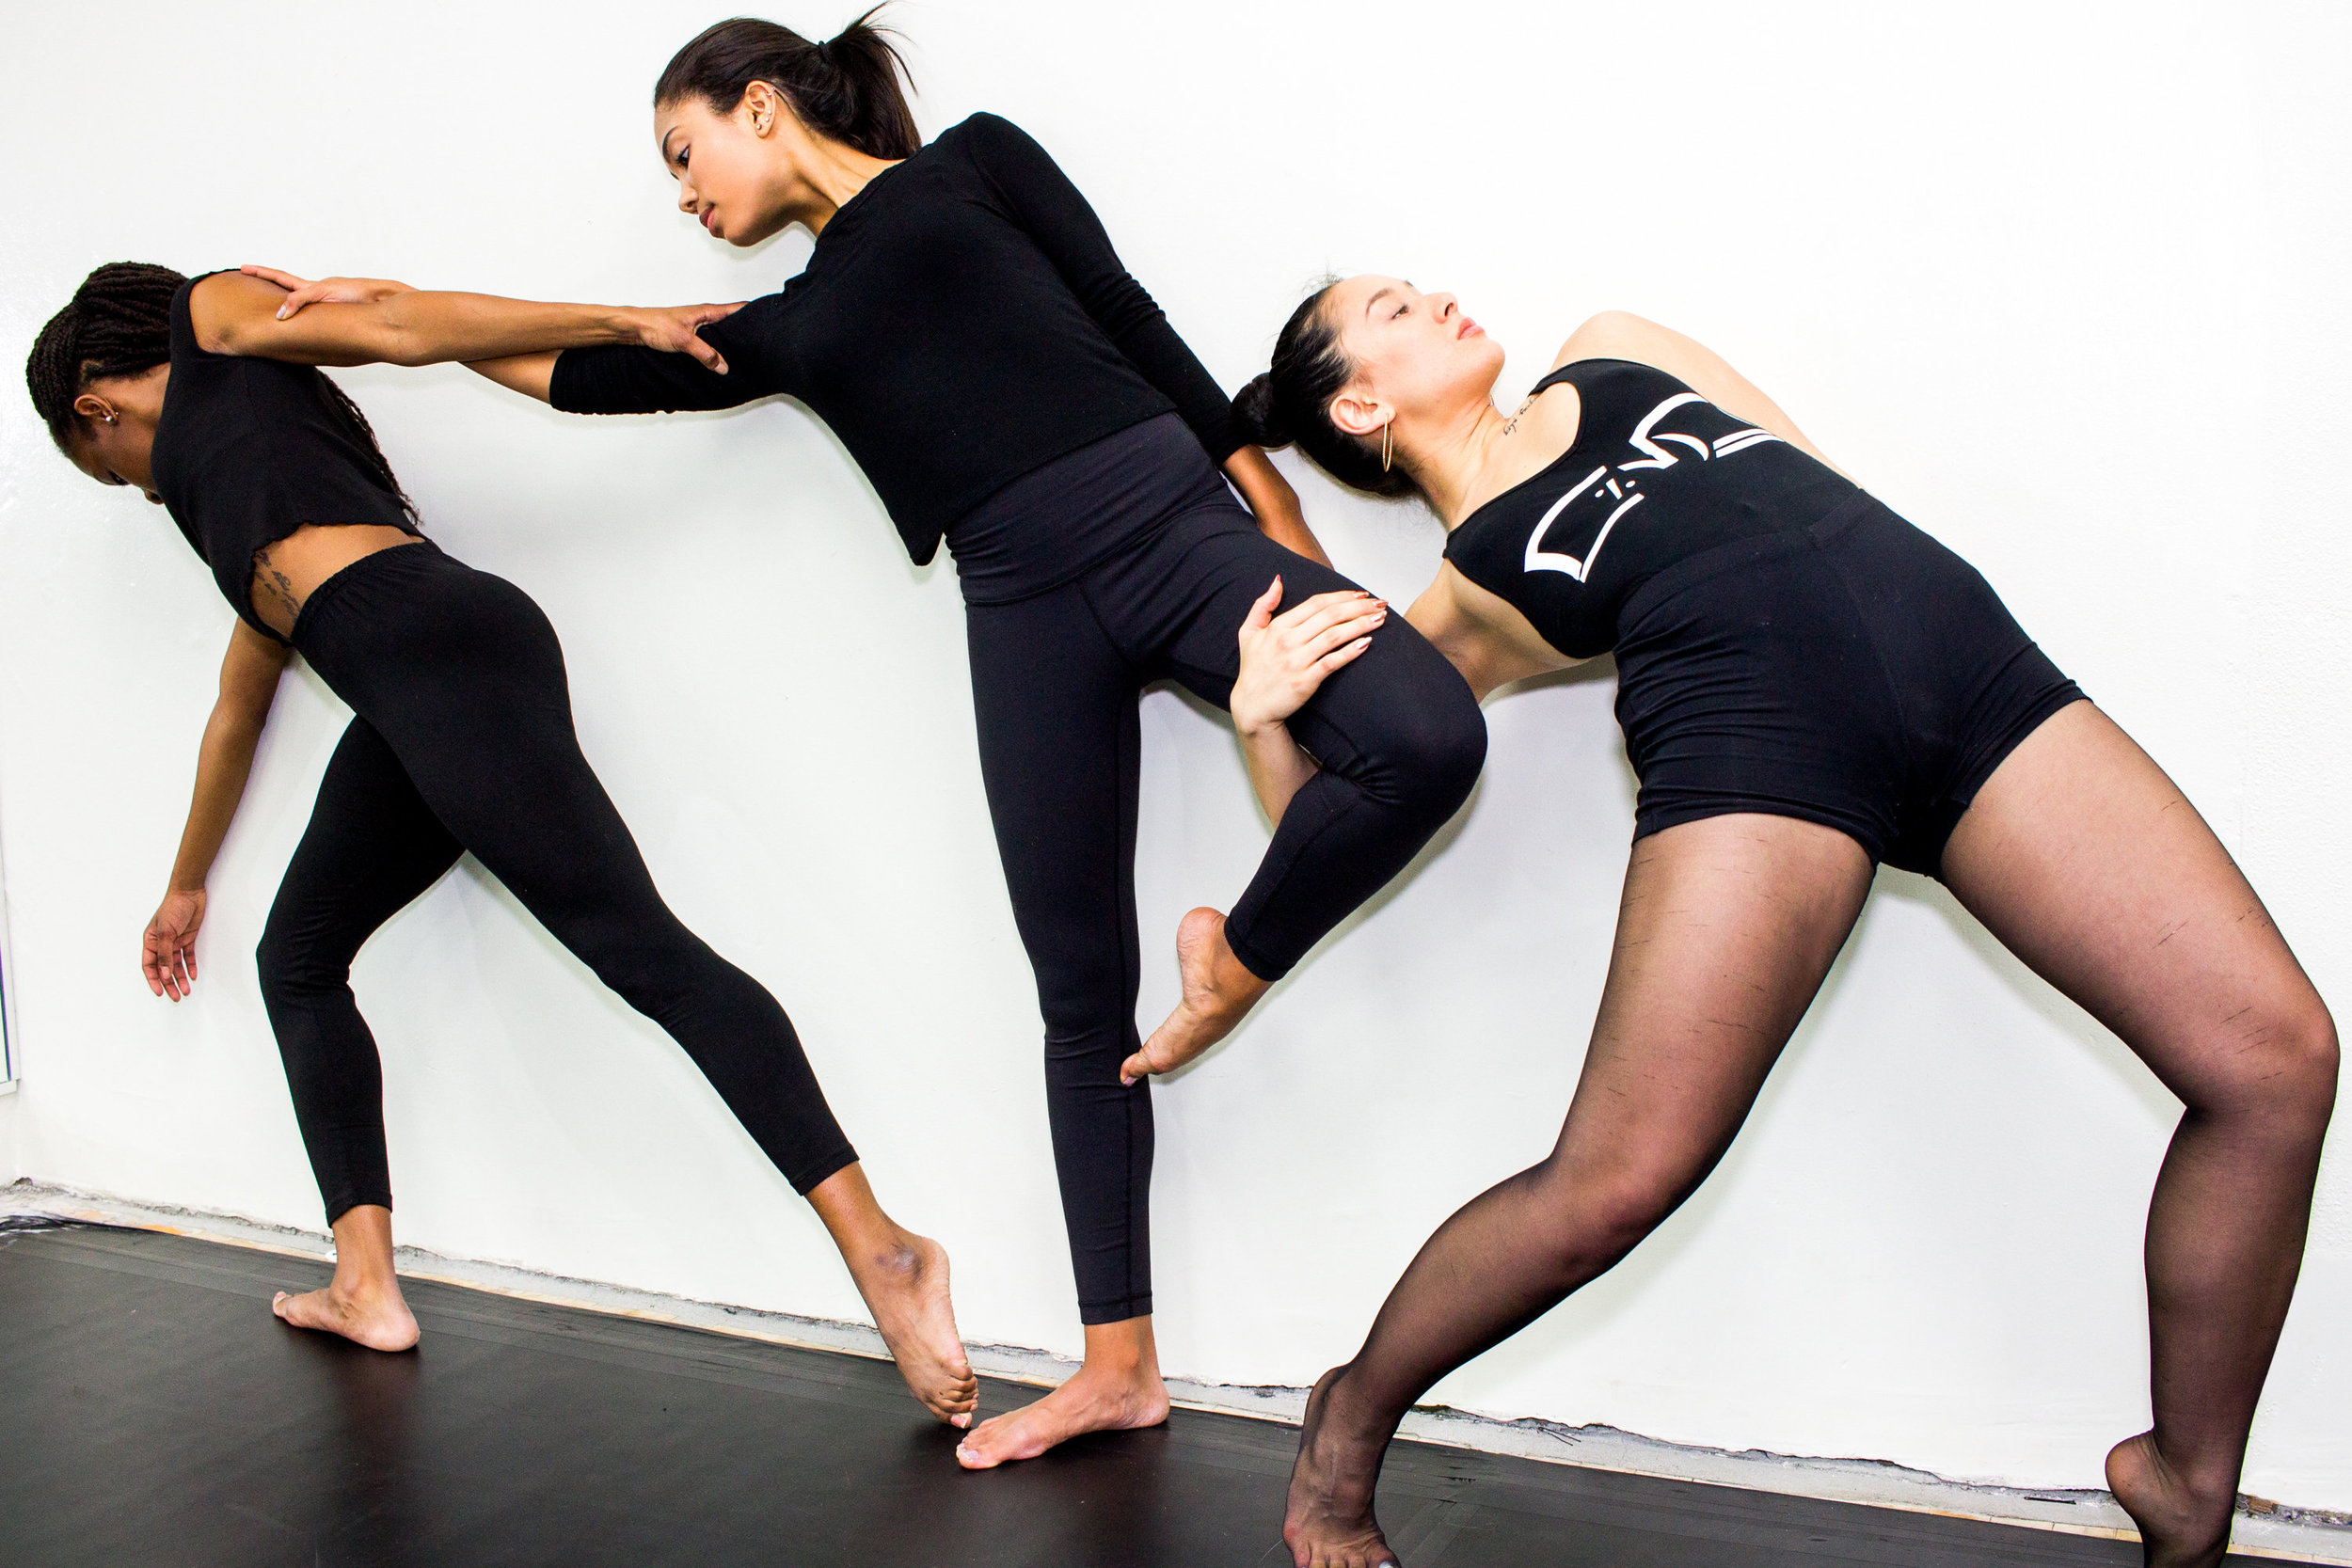 - Contemporary/Ballet- Our Contemporary/Ballet Intensives are held Sundays, 12:30pm-1:30pm. Our goal is to provide an excellent learning environment through the use of mentorship, performing and creative arts instructions. Our arts based model is designed to develop students self-confidence, unique strengths, and leadership skills. This intensive will emphasize correct technique, fundamentals and a familiarization of contemporary/ballet vocabulary.